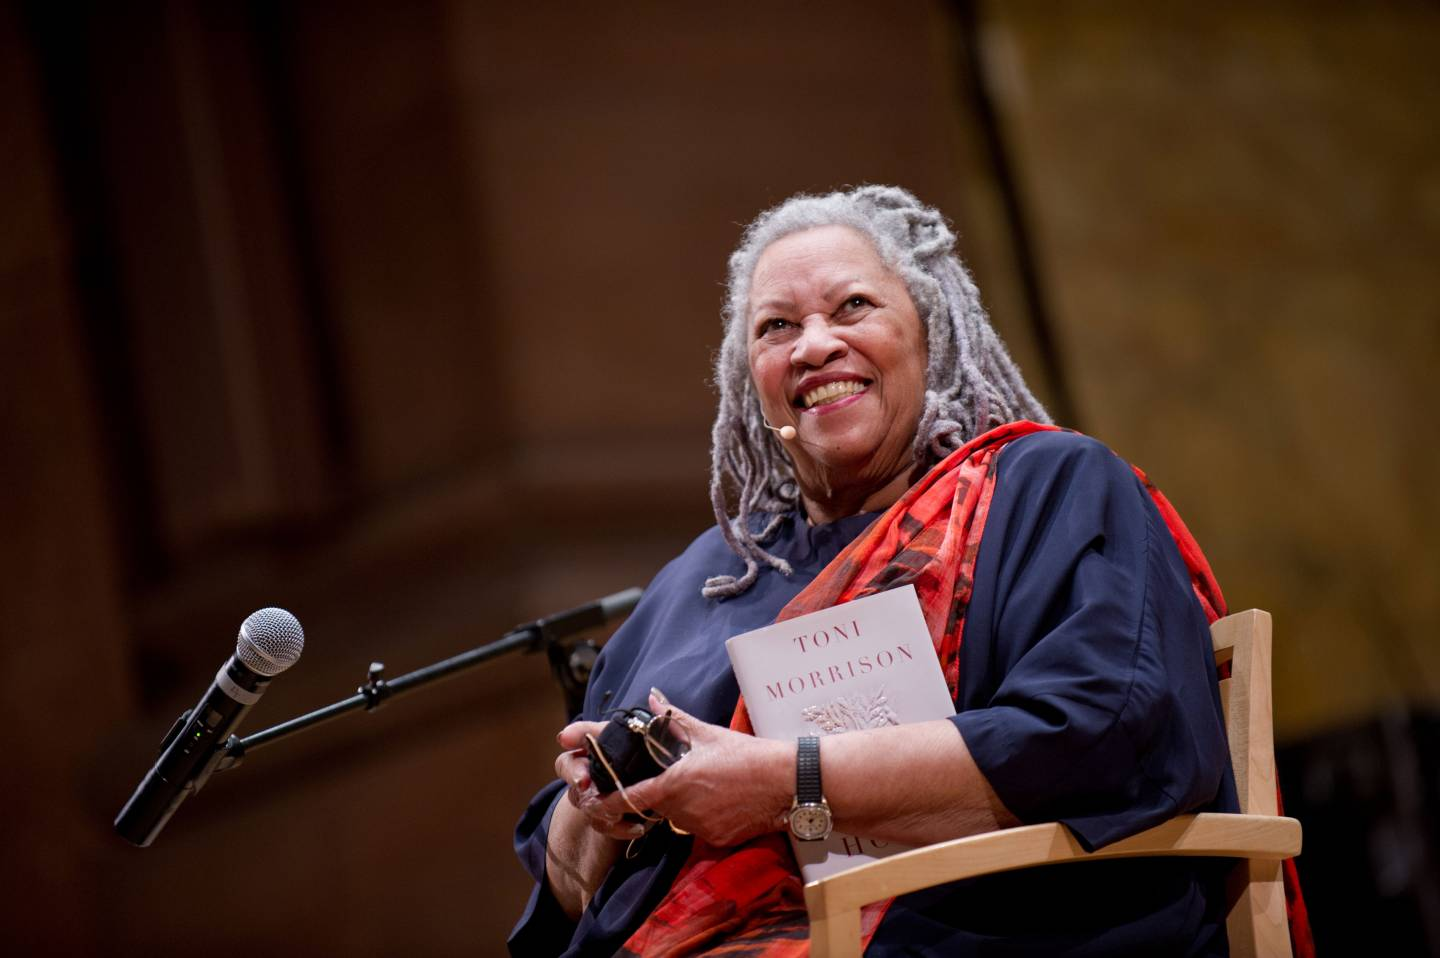 Toni Morrison to be honored in Thanksgiving marathon reading, posthumous induction to National Women's Hall of Fame